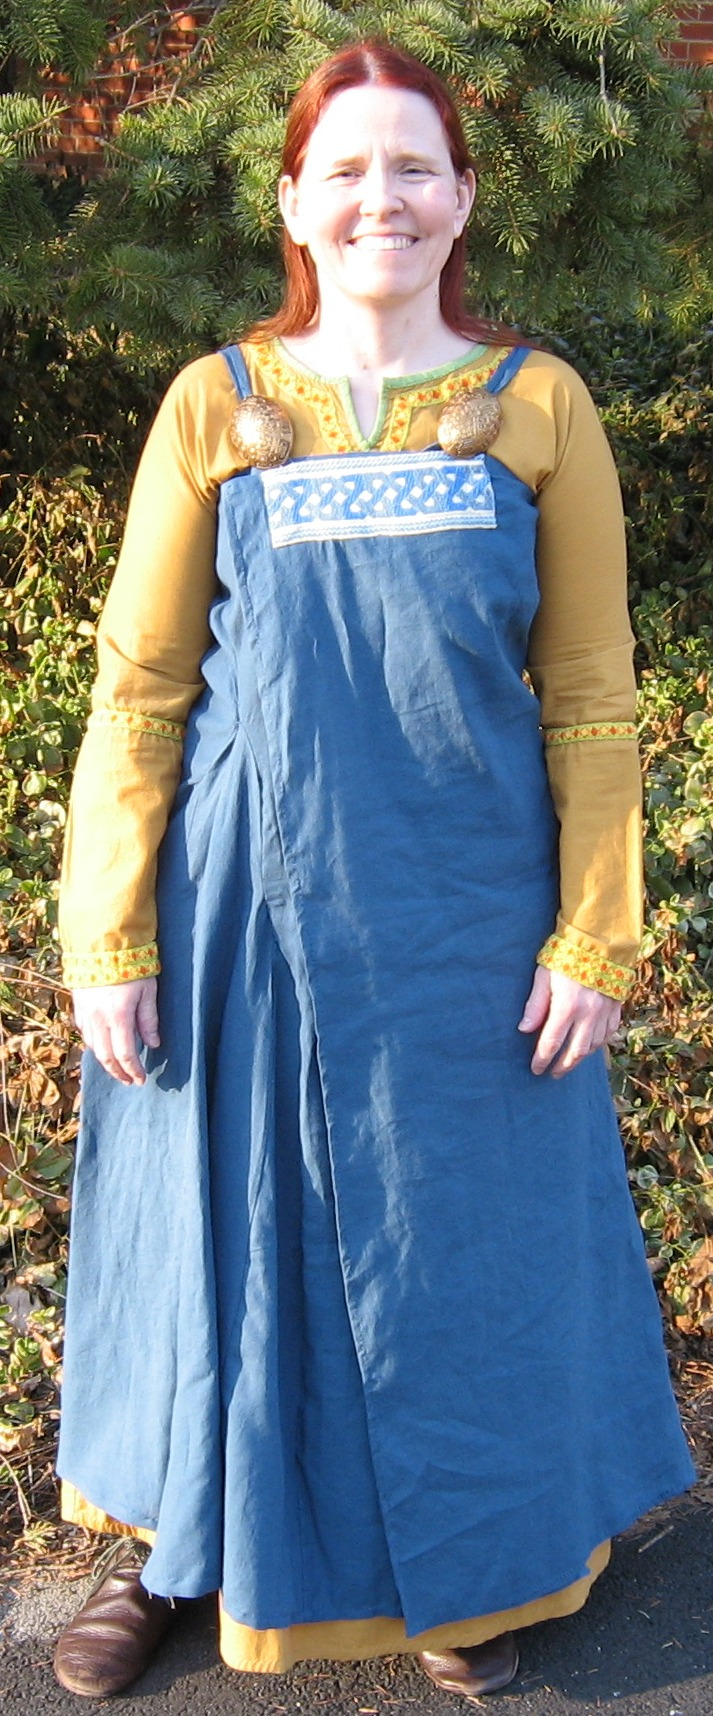 Catherine, Wraparound Viking apron dress design (experimental only!  Not really a recreation) in IL019 linen.